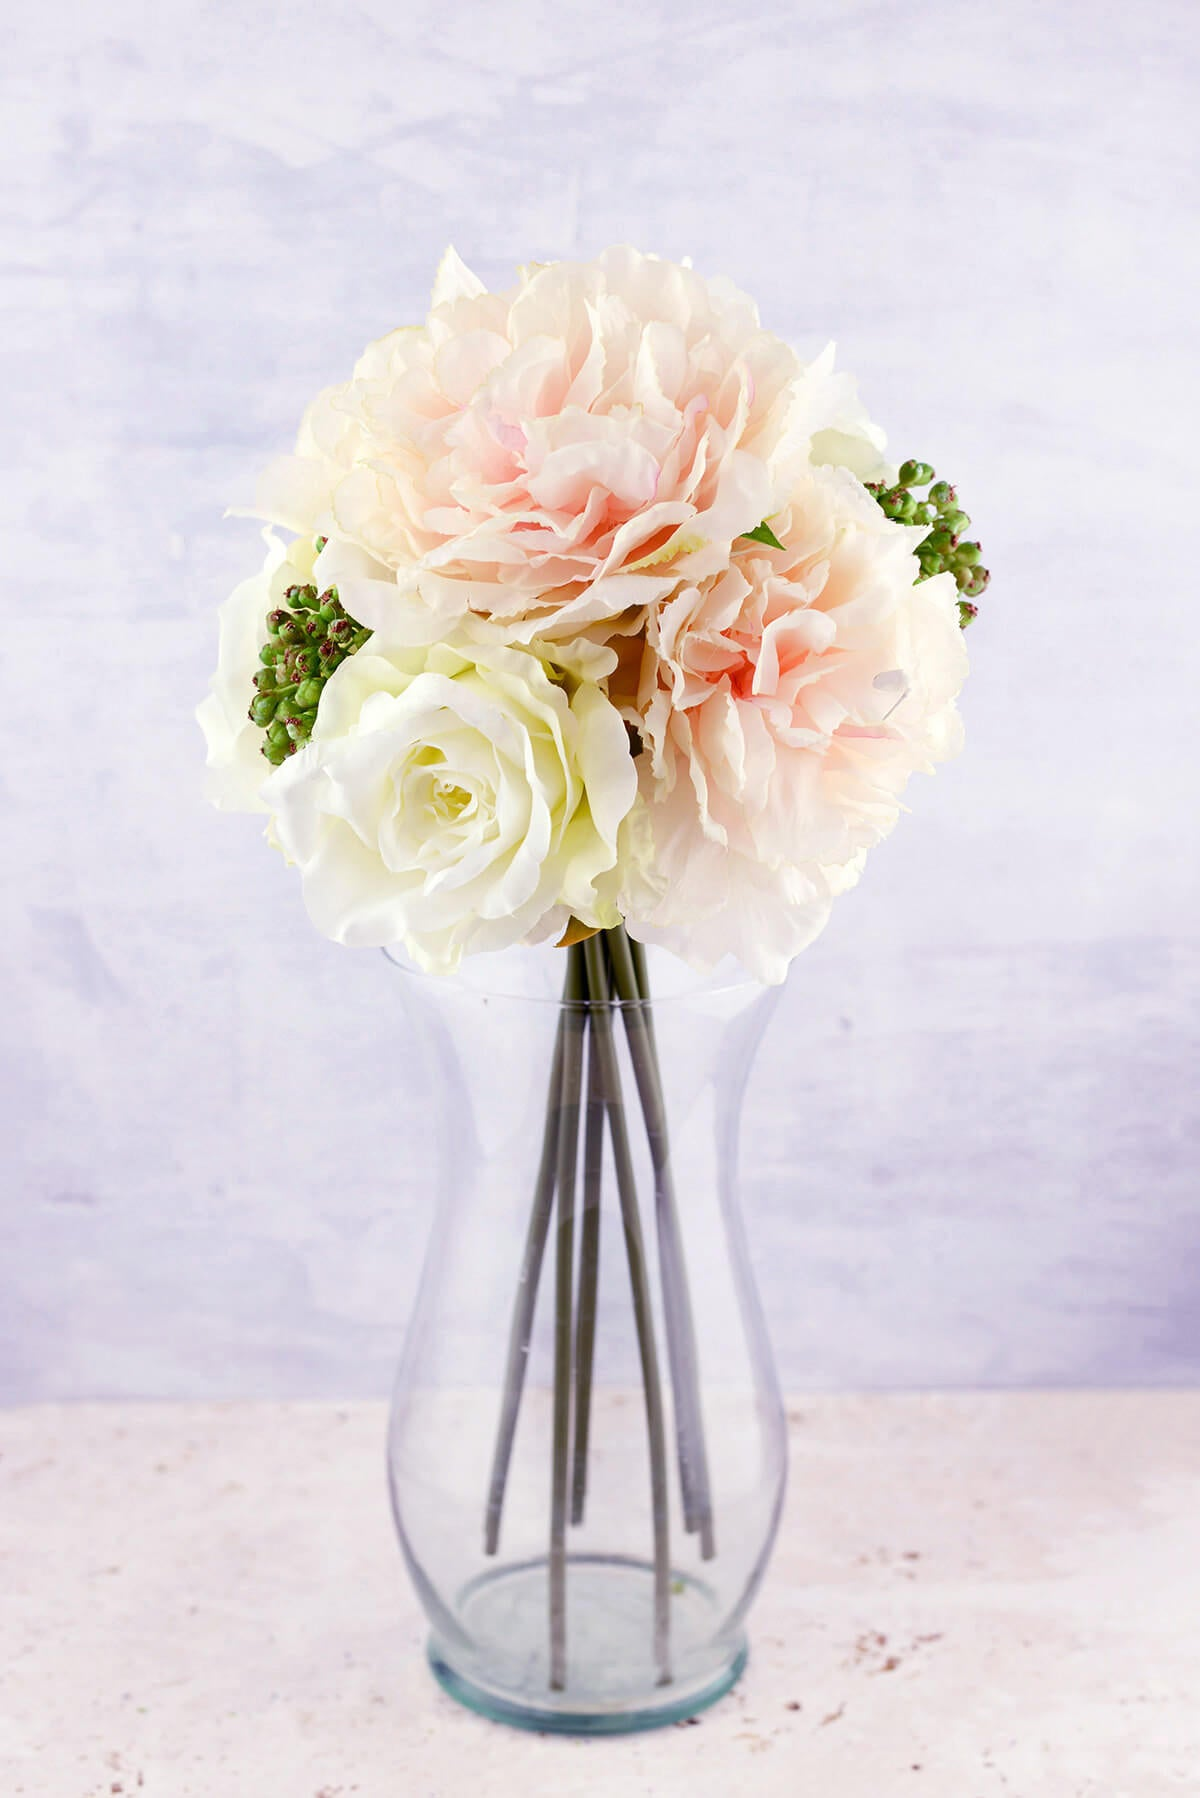 Blush & White Peonies, Sedum, Silk Peony & Rose Bouquet, Artificial Flowers, Wedding Bouquet